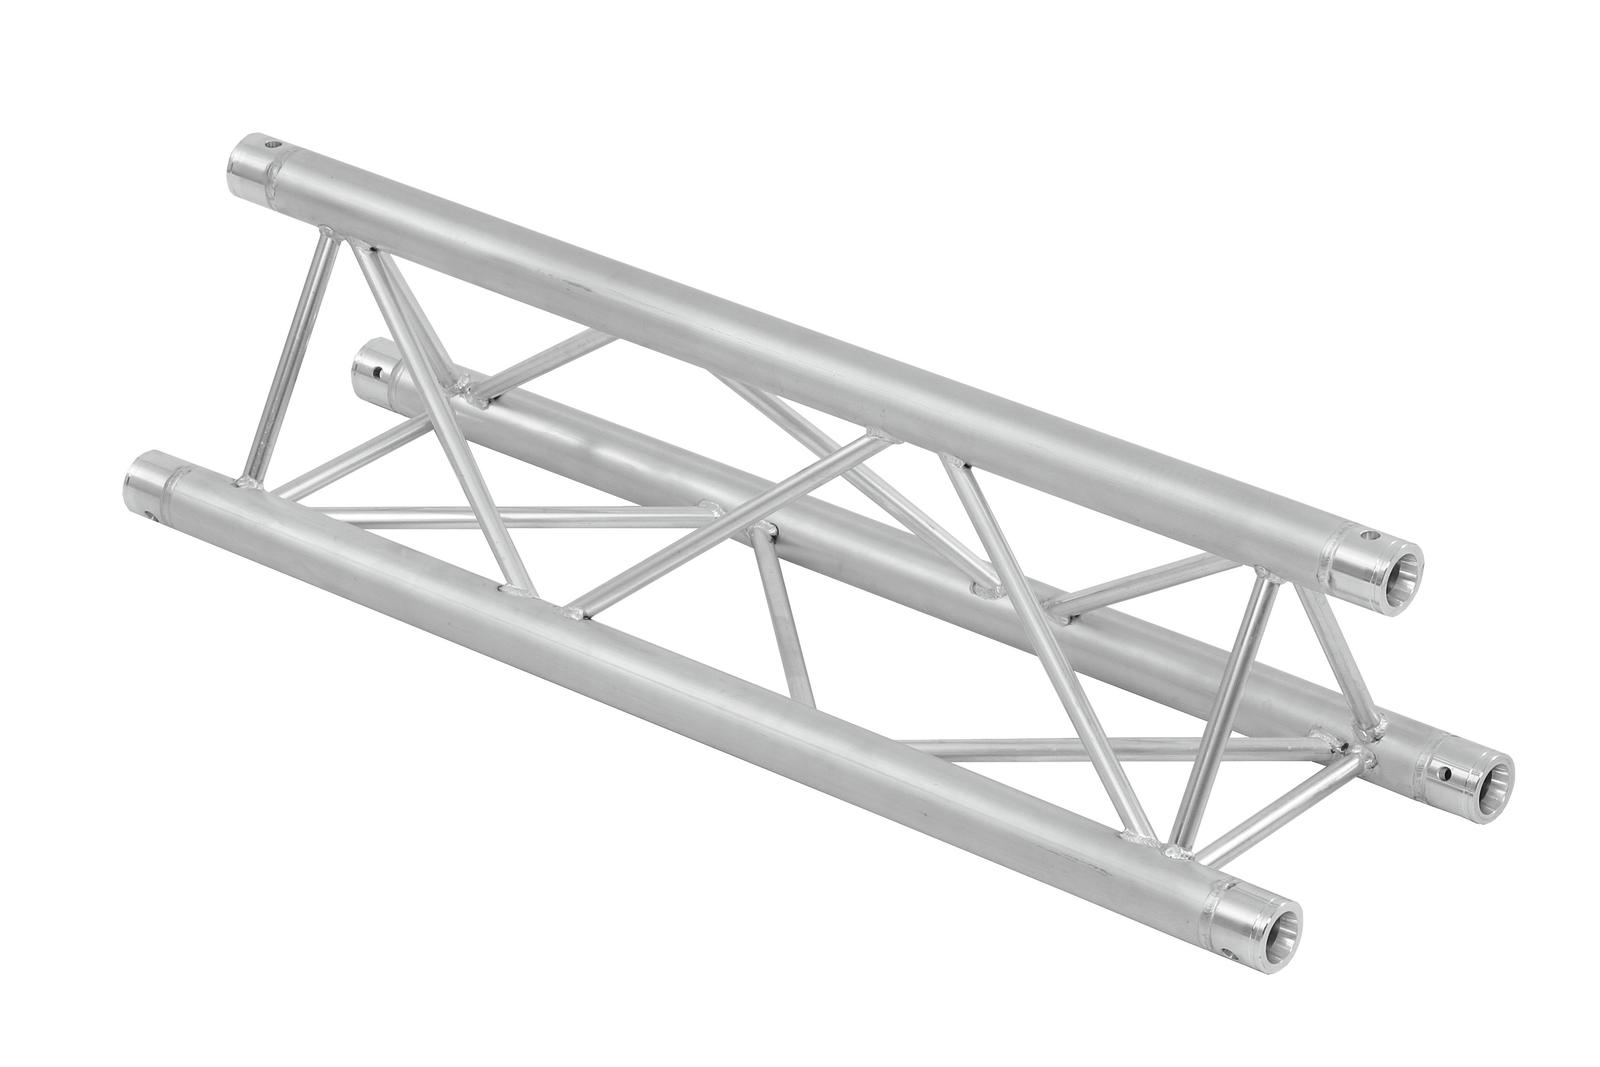 ALUTRUSS TRILOCK 6082-1500 a 3 vie traverse